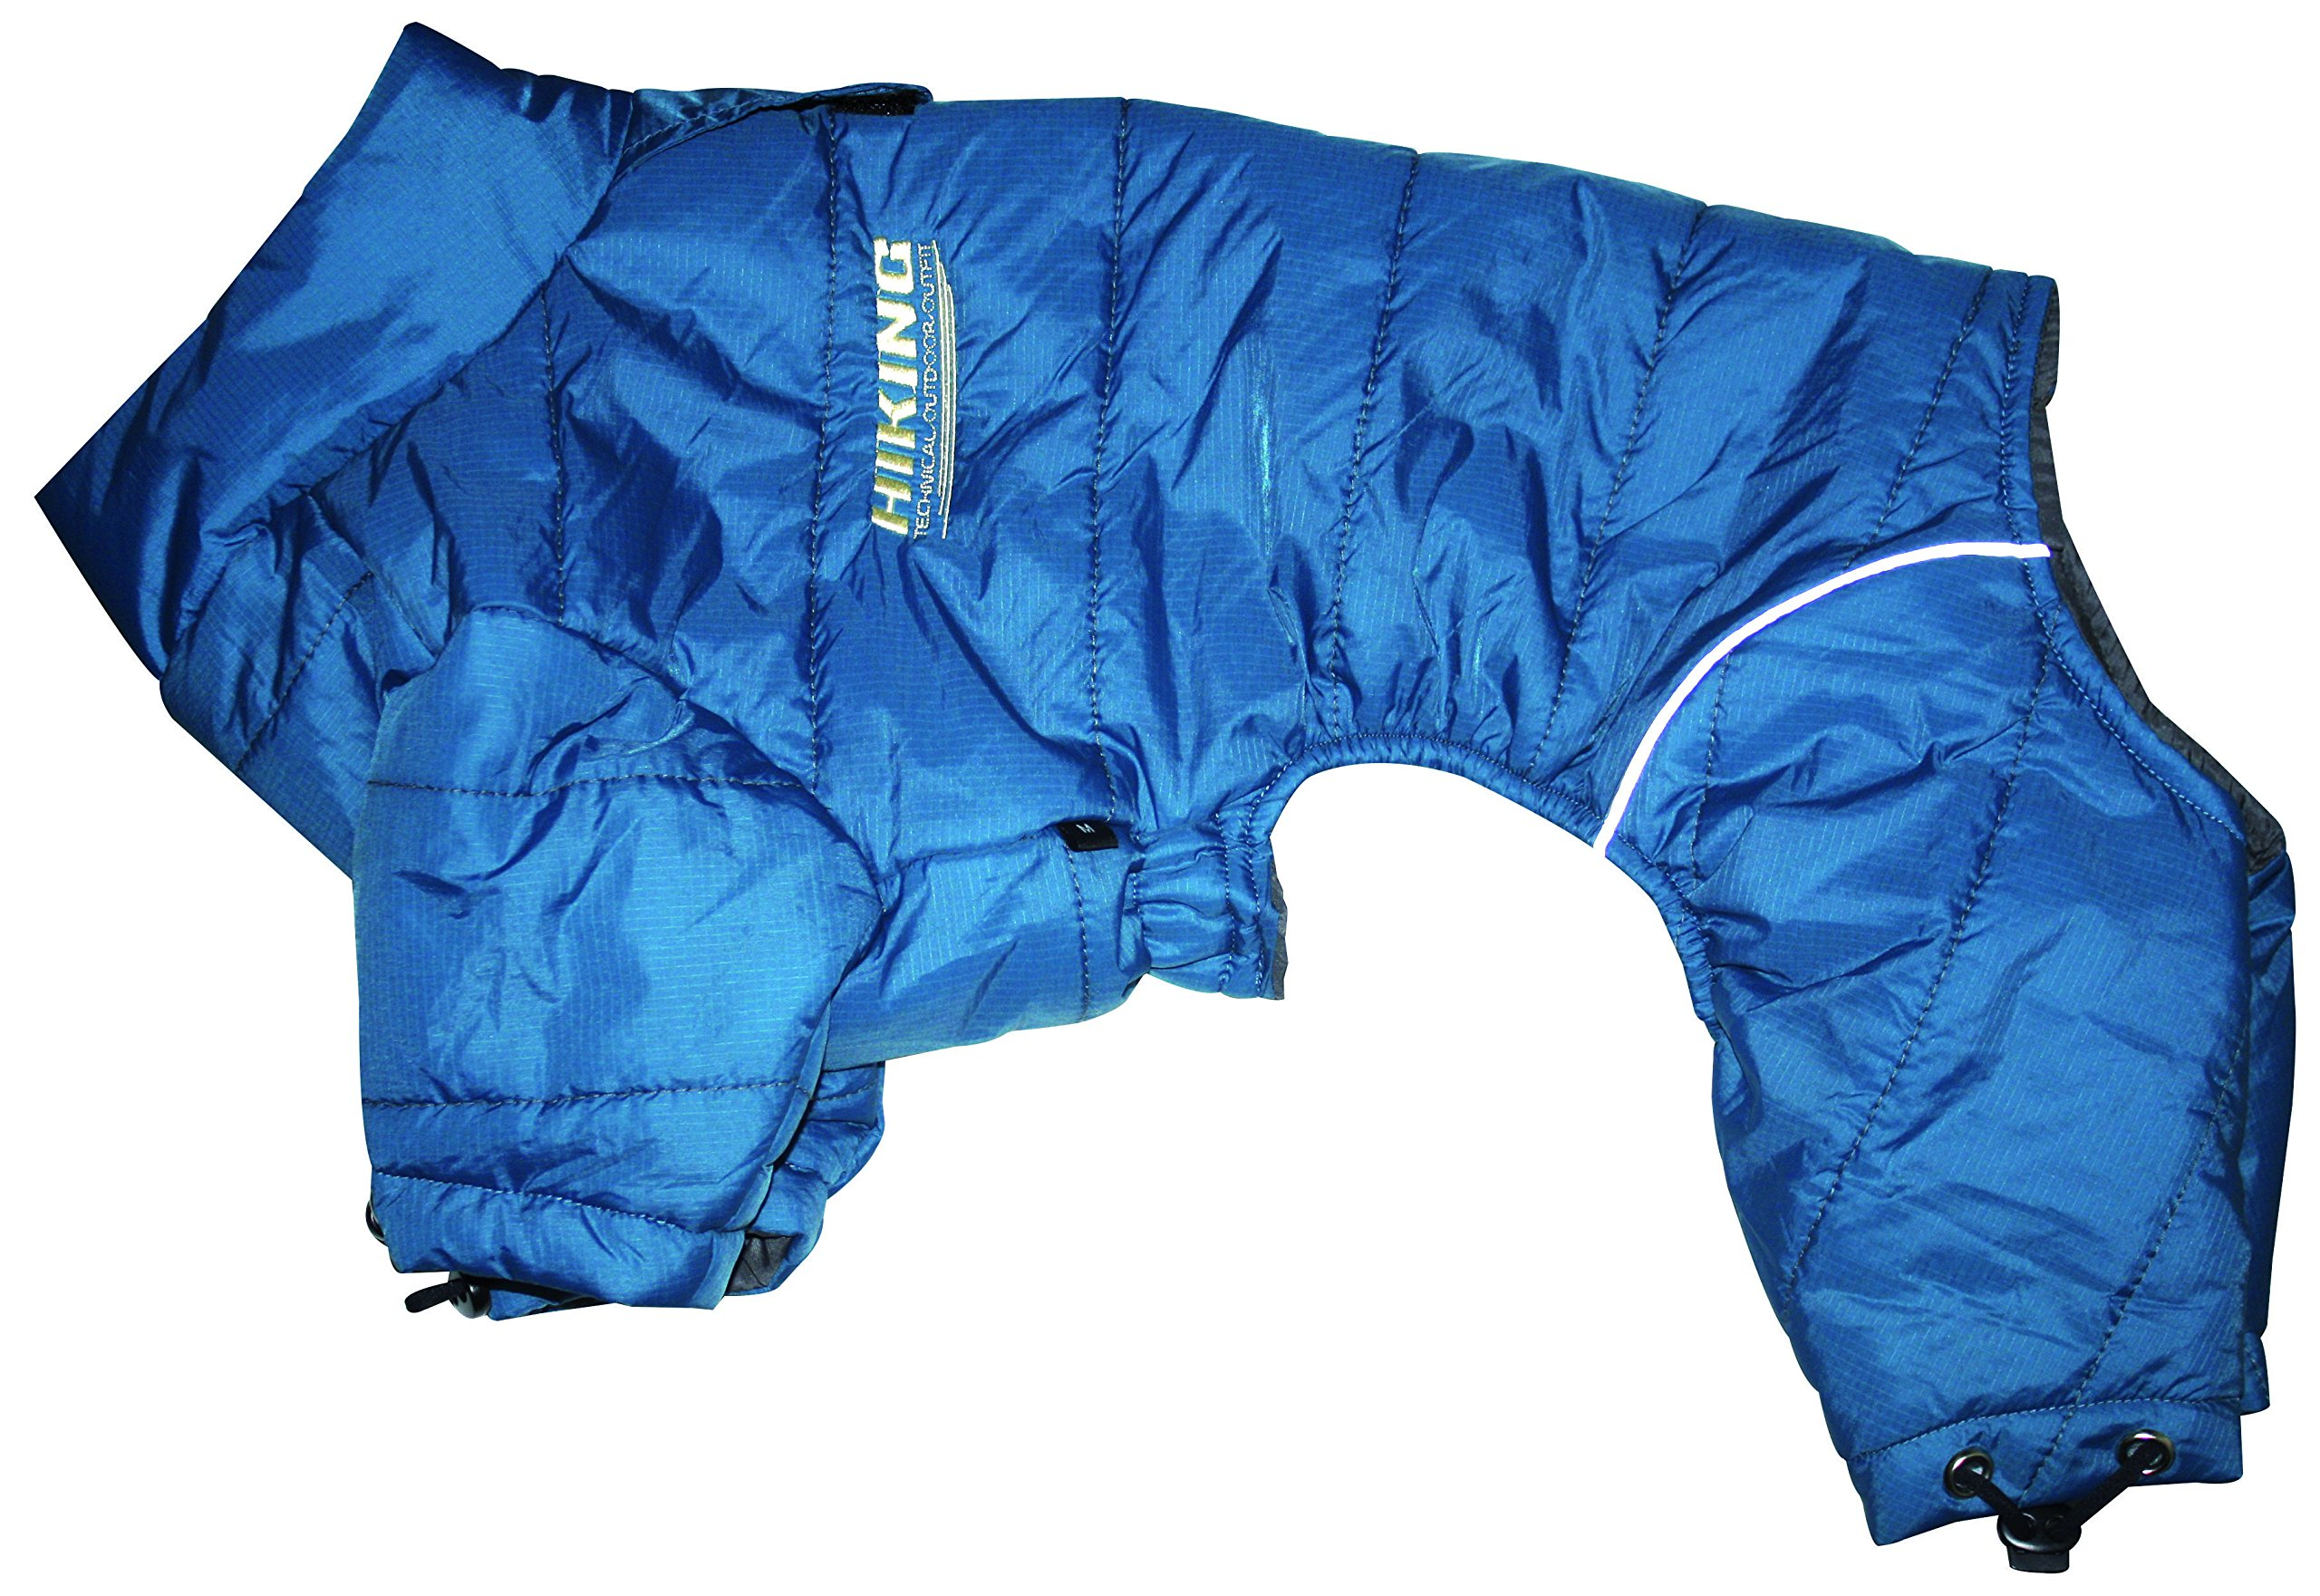 Croci Waterproof Tracksuit Hiking for Dogs, 30-32 cm, Blue by Croci